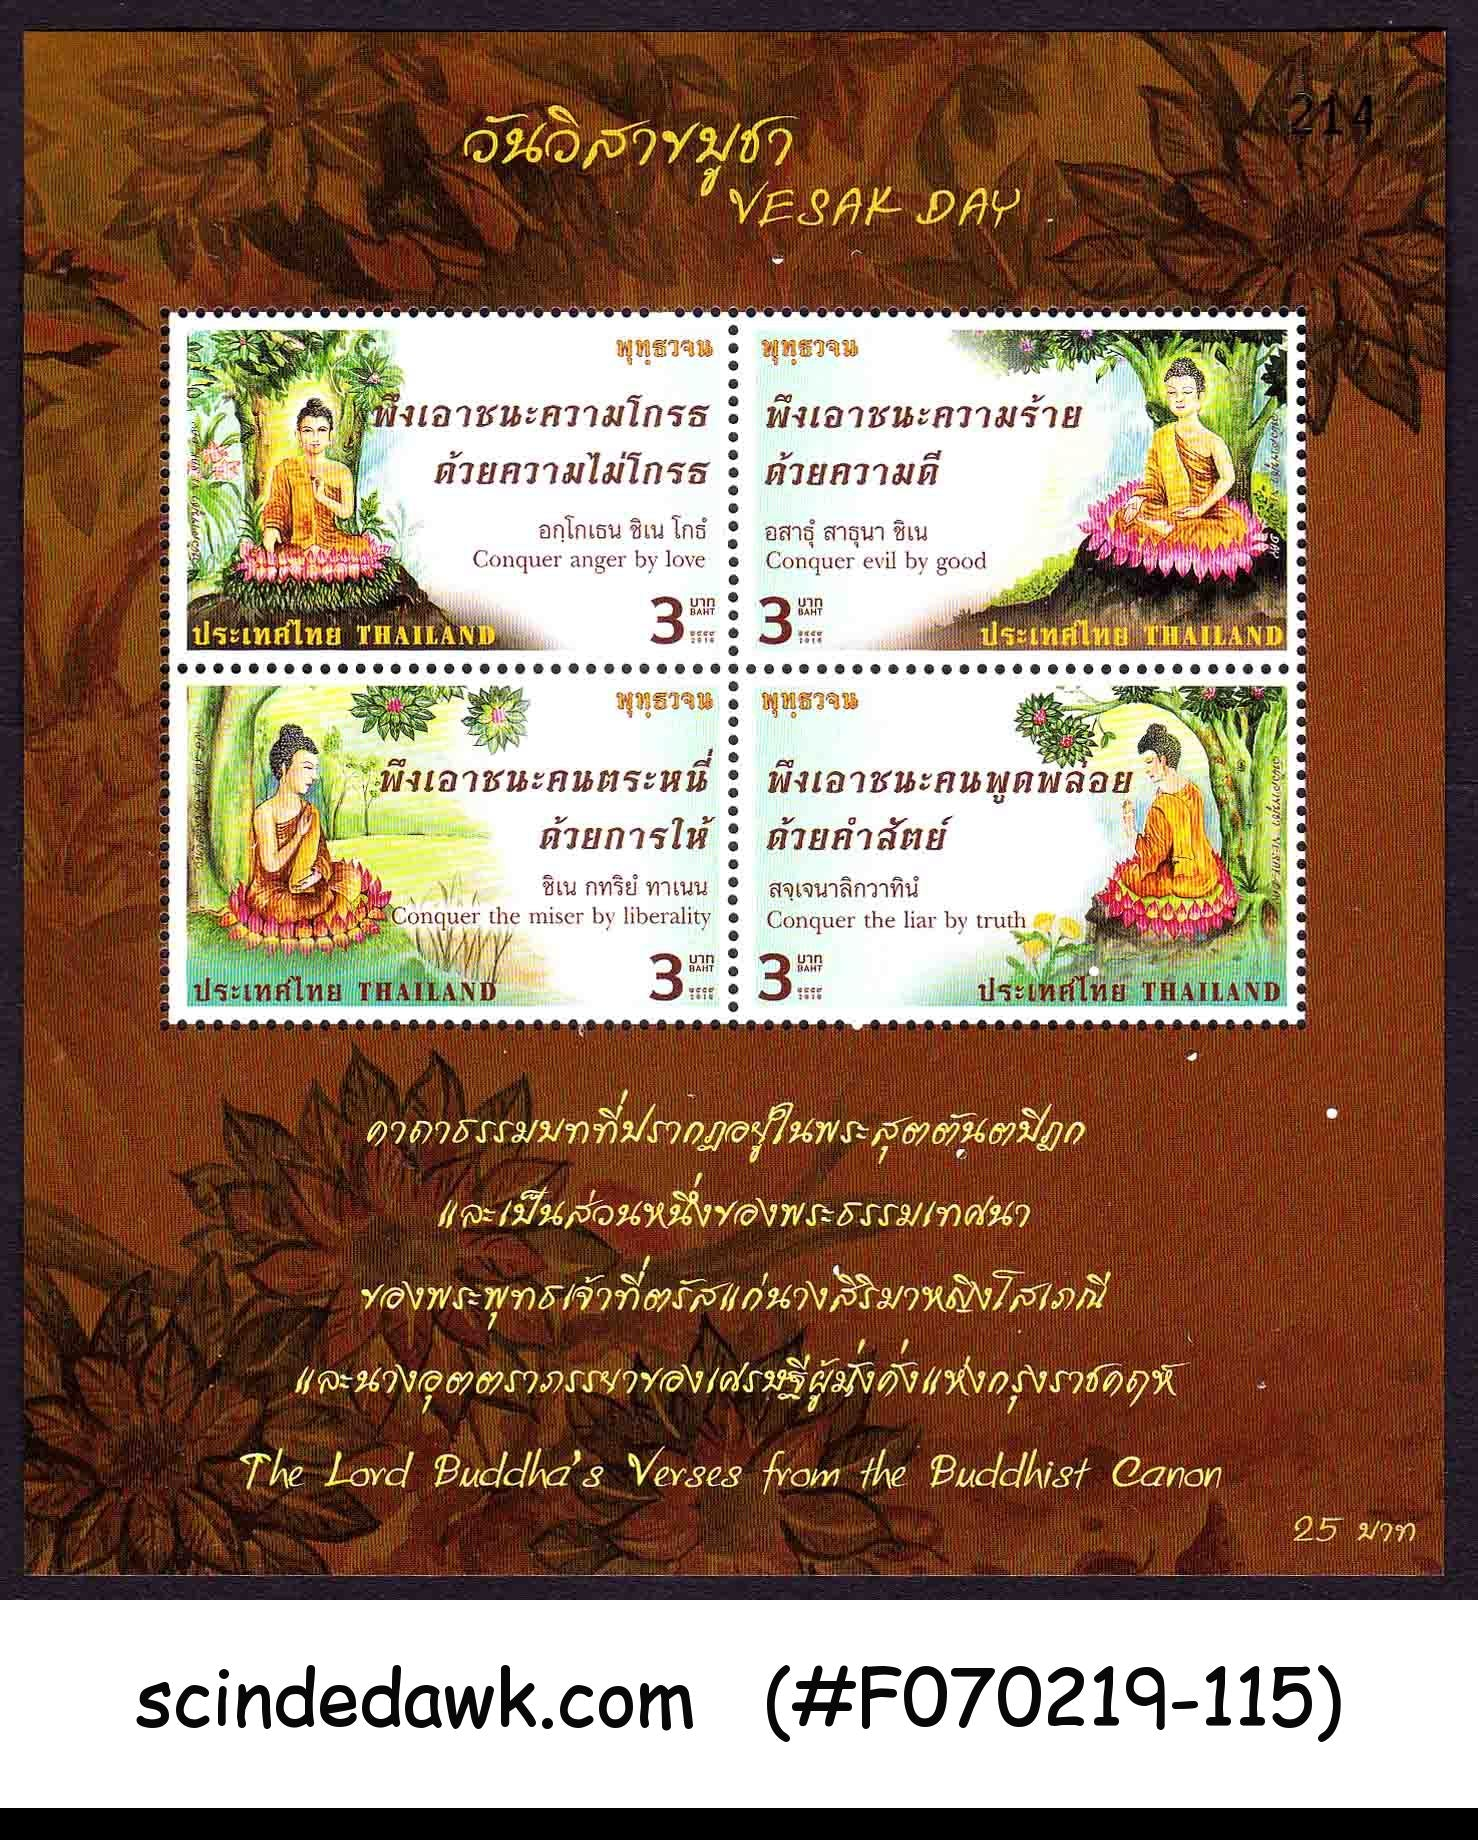 THAILAND - 2016 VESAK DAY - MINIATURE SHEET MNH